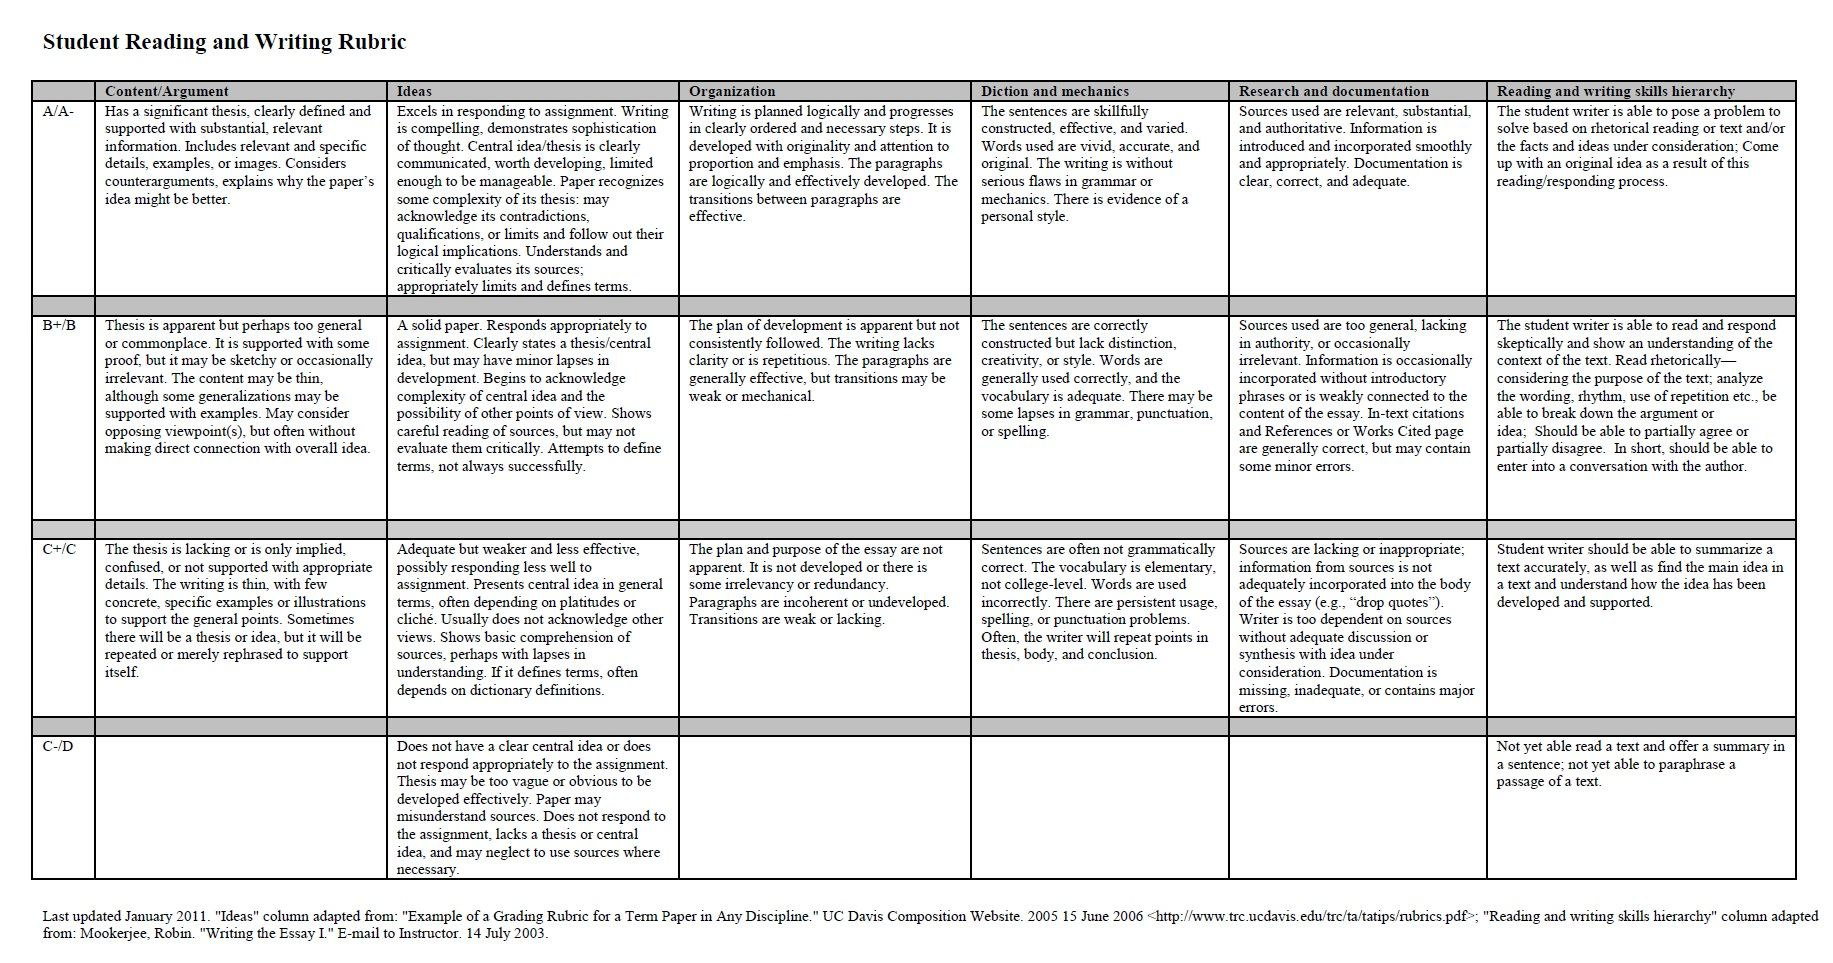 grading rubric for college essay Summary rubric element exceeds 5 meets 4 approaches 3 fails 1 content demonstrates mastery in  identifies any significant shifts in the author's essay c identifies all supporting claims  word choice is college-level and appropriate for a formal audience (for example, it avoids slang.